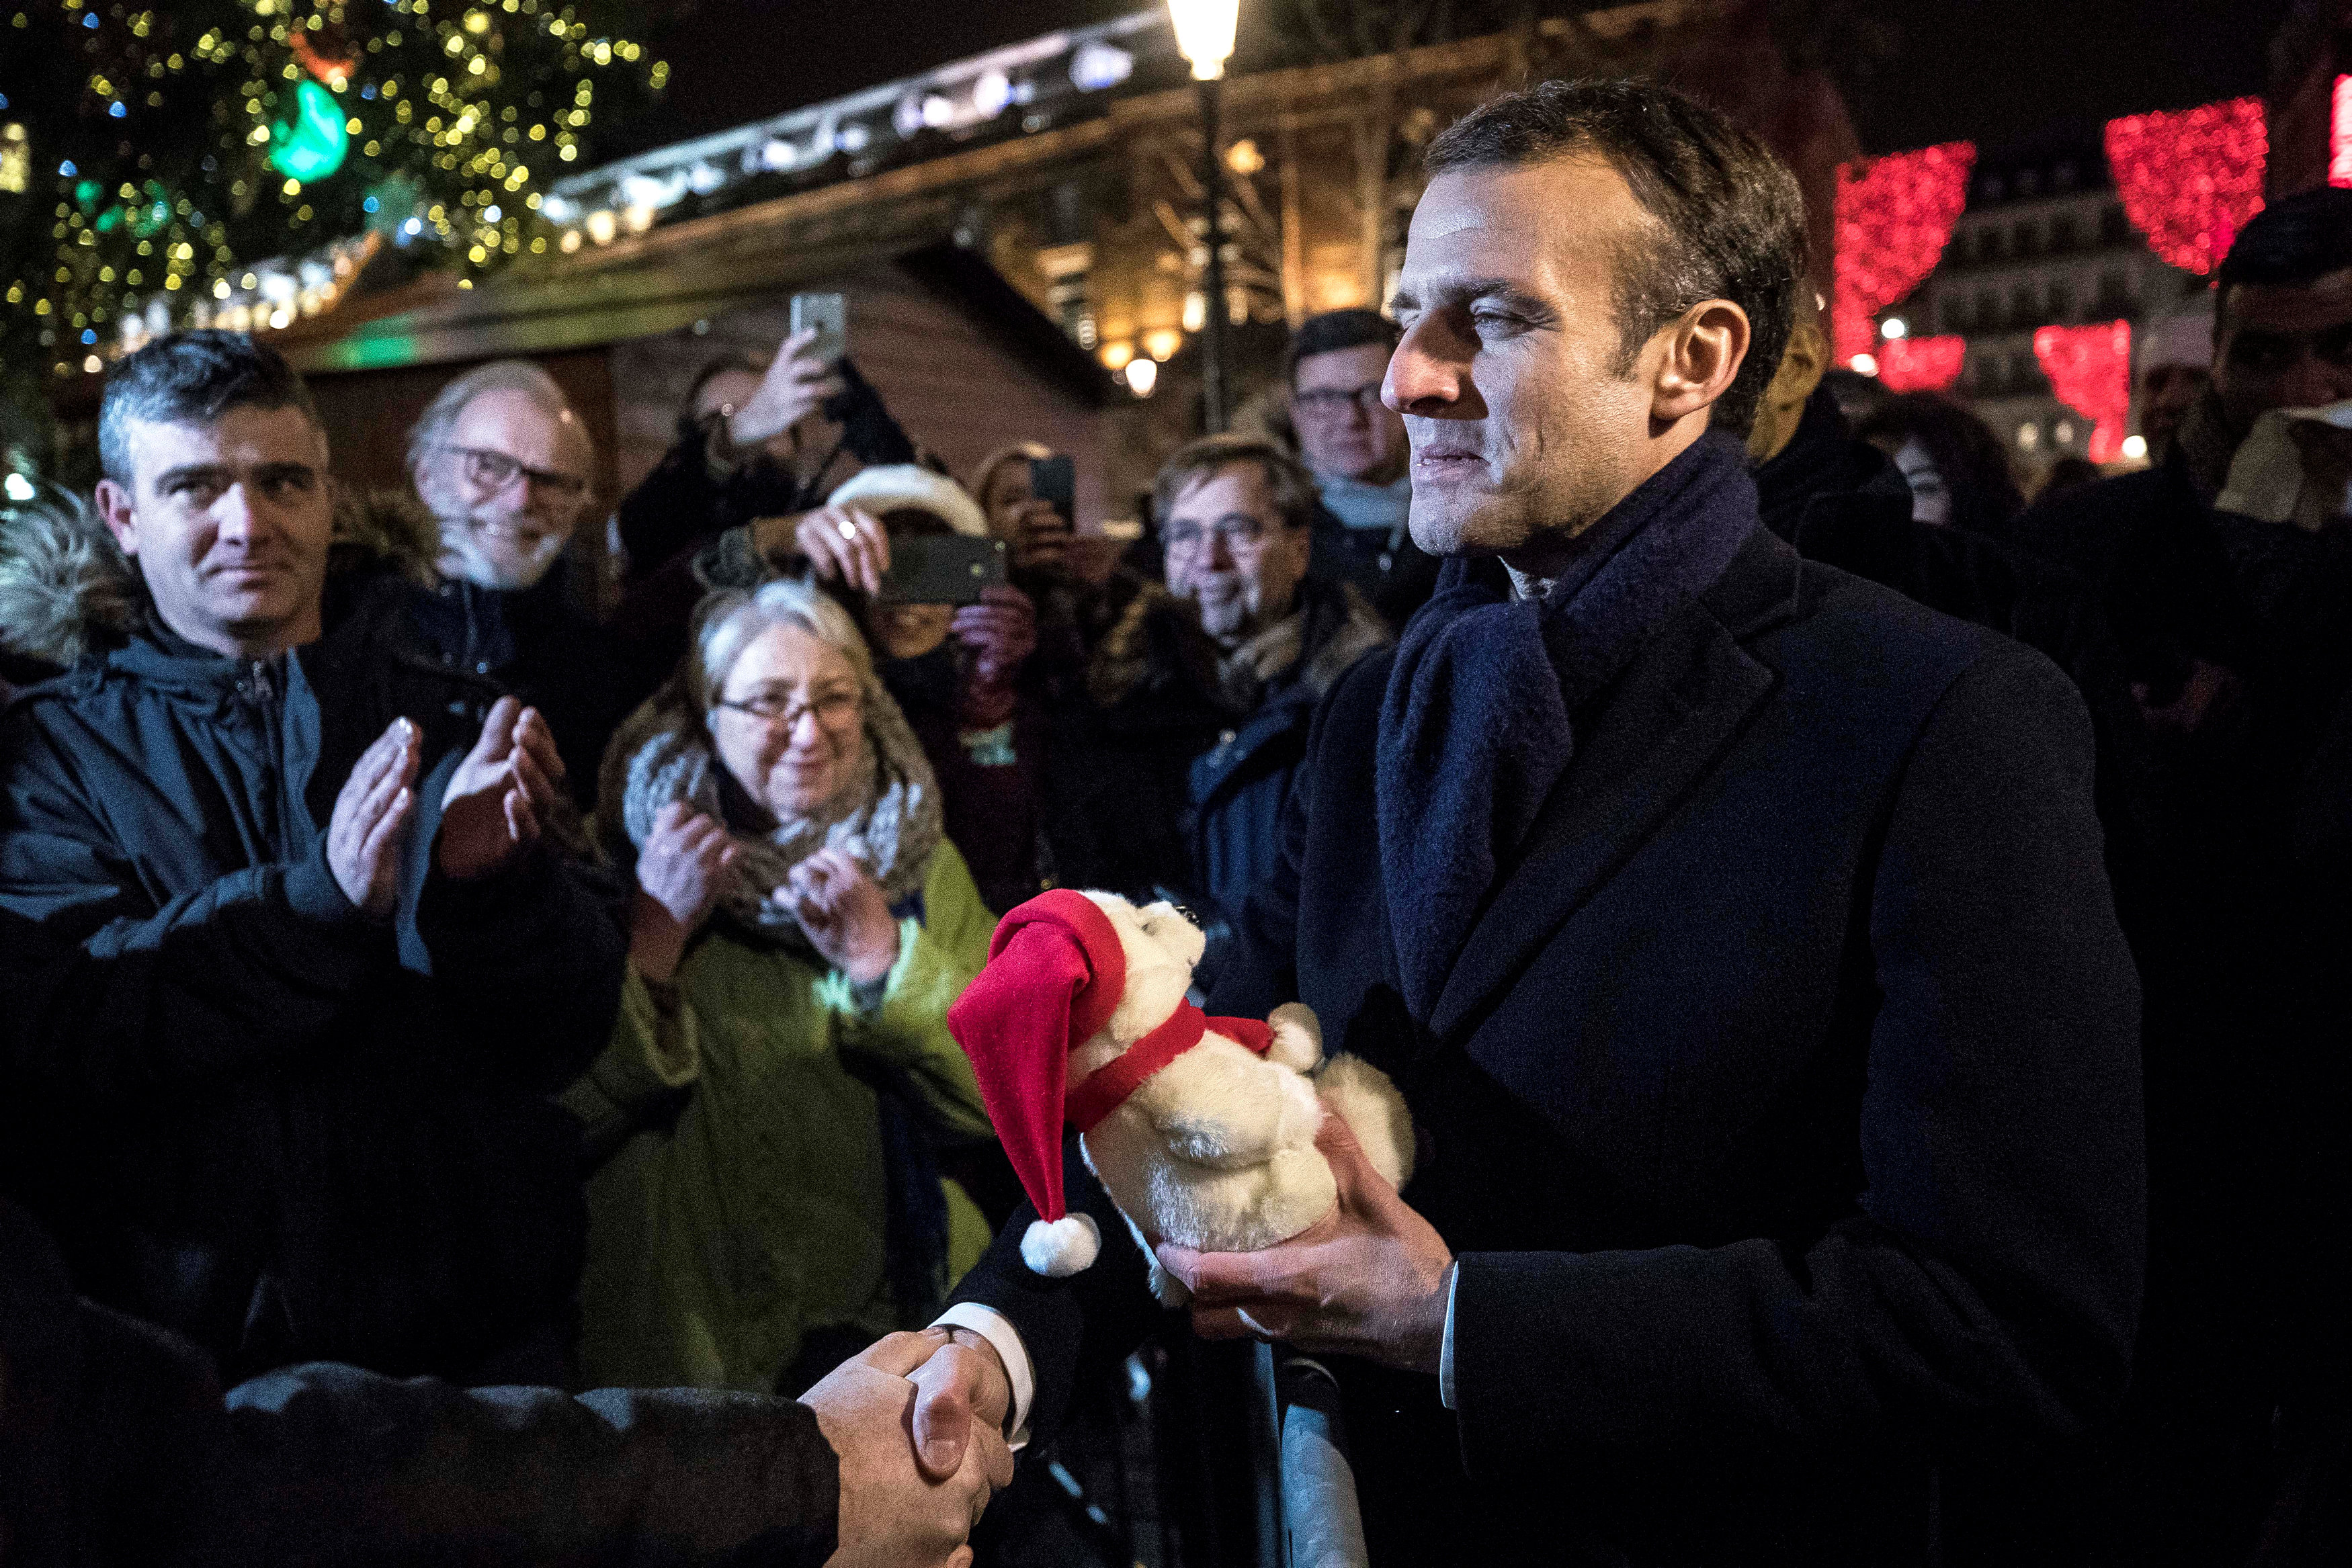 2018-12-14T202922Z_2062155409_RC1F82F4C100_RTRMADP_3_FRANCE-SECURITY-MACRON-CHRISTMAS